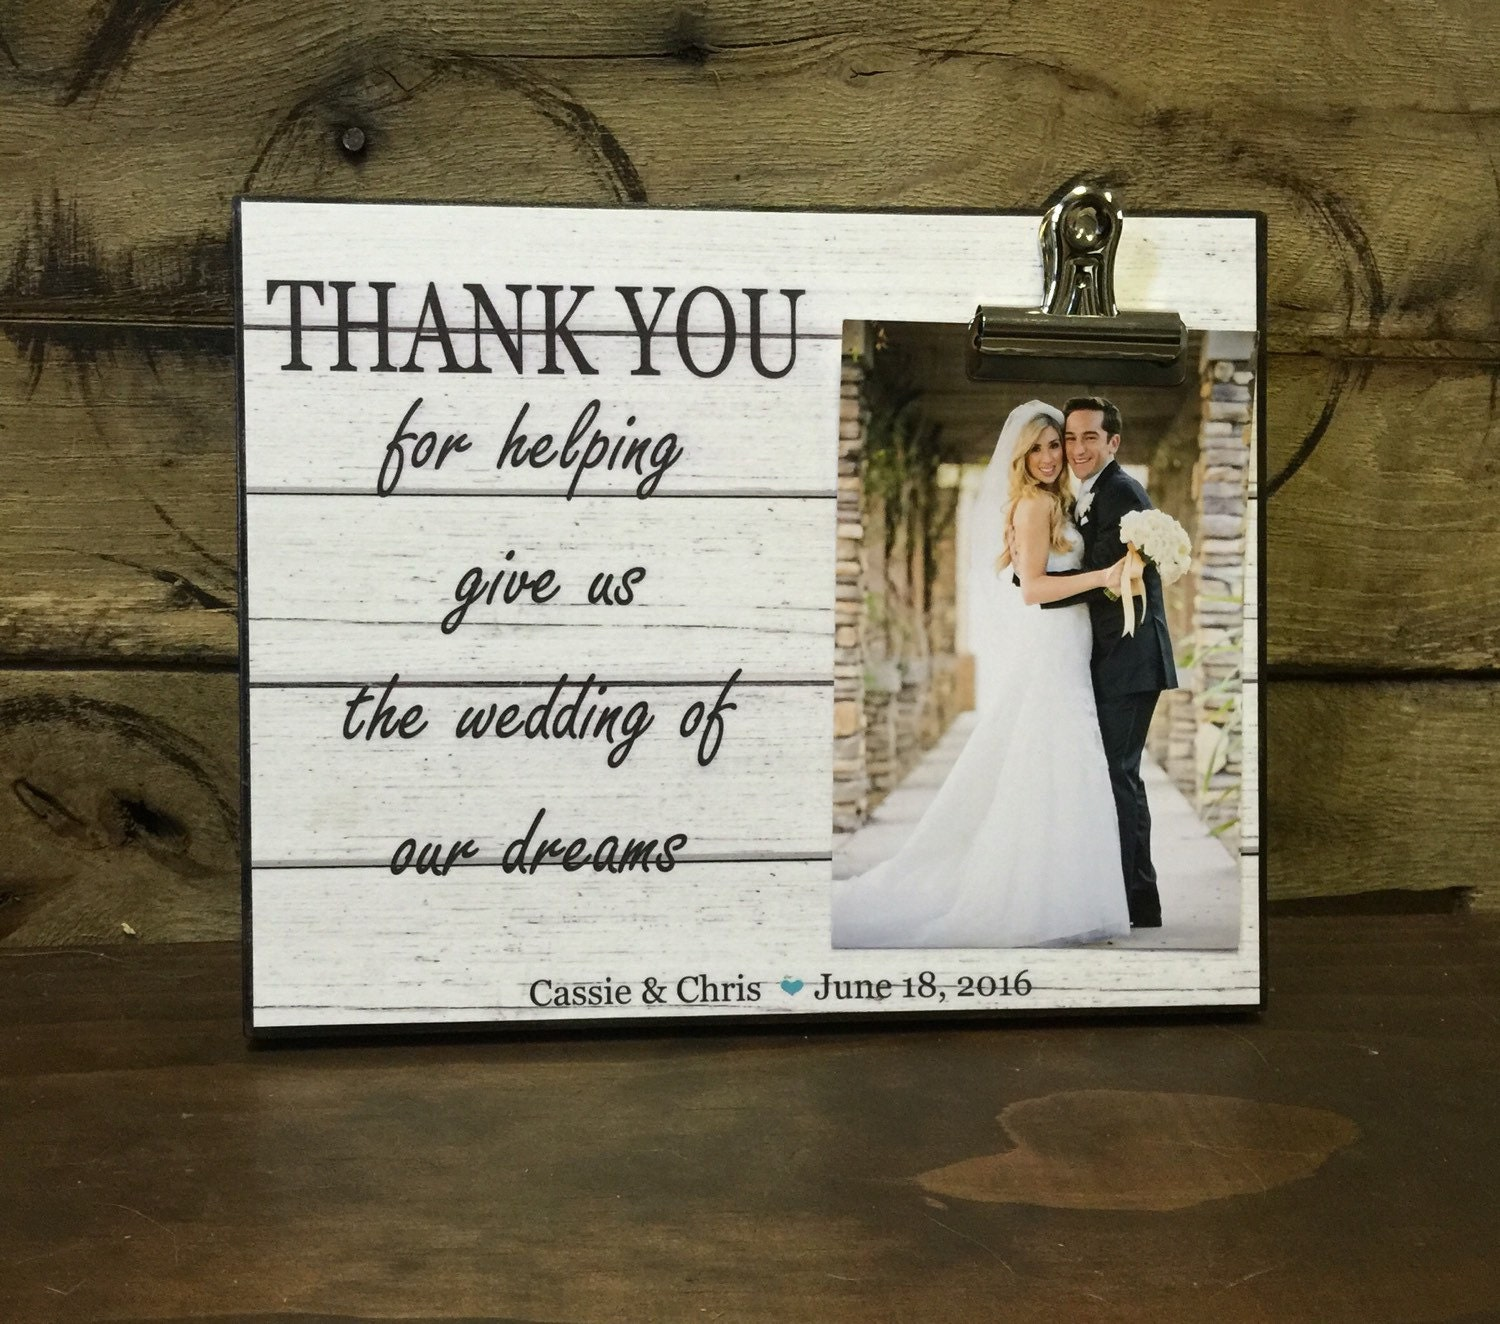 Thank You Wedding: Wedding Officiant Gift Wedding Gift Thank You For Helping